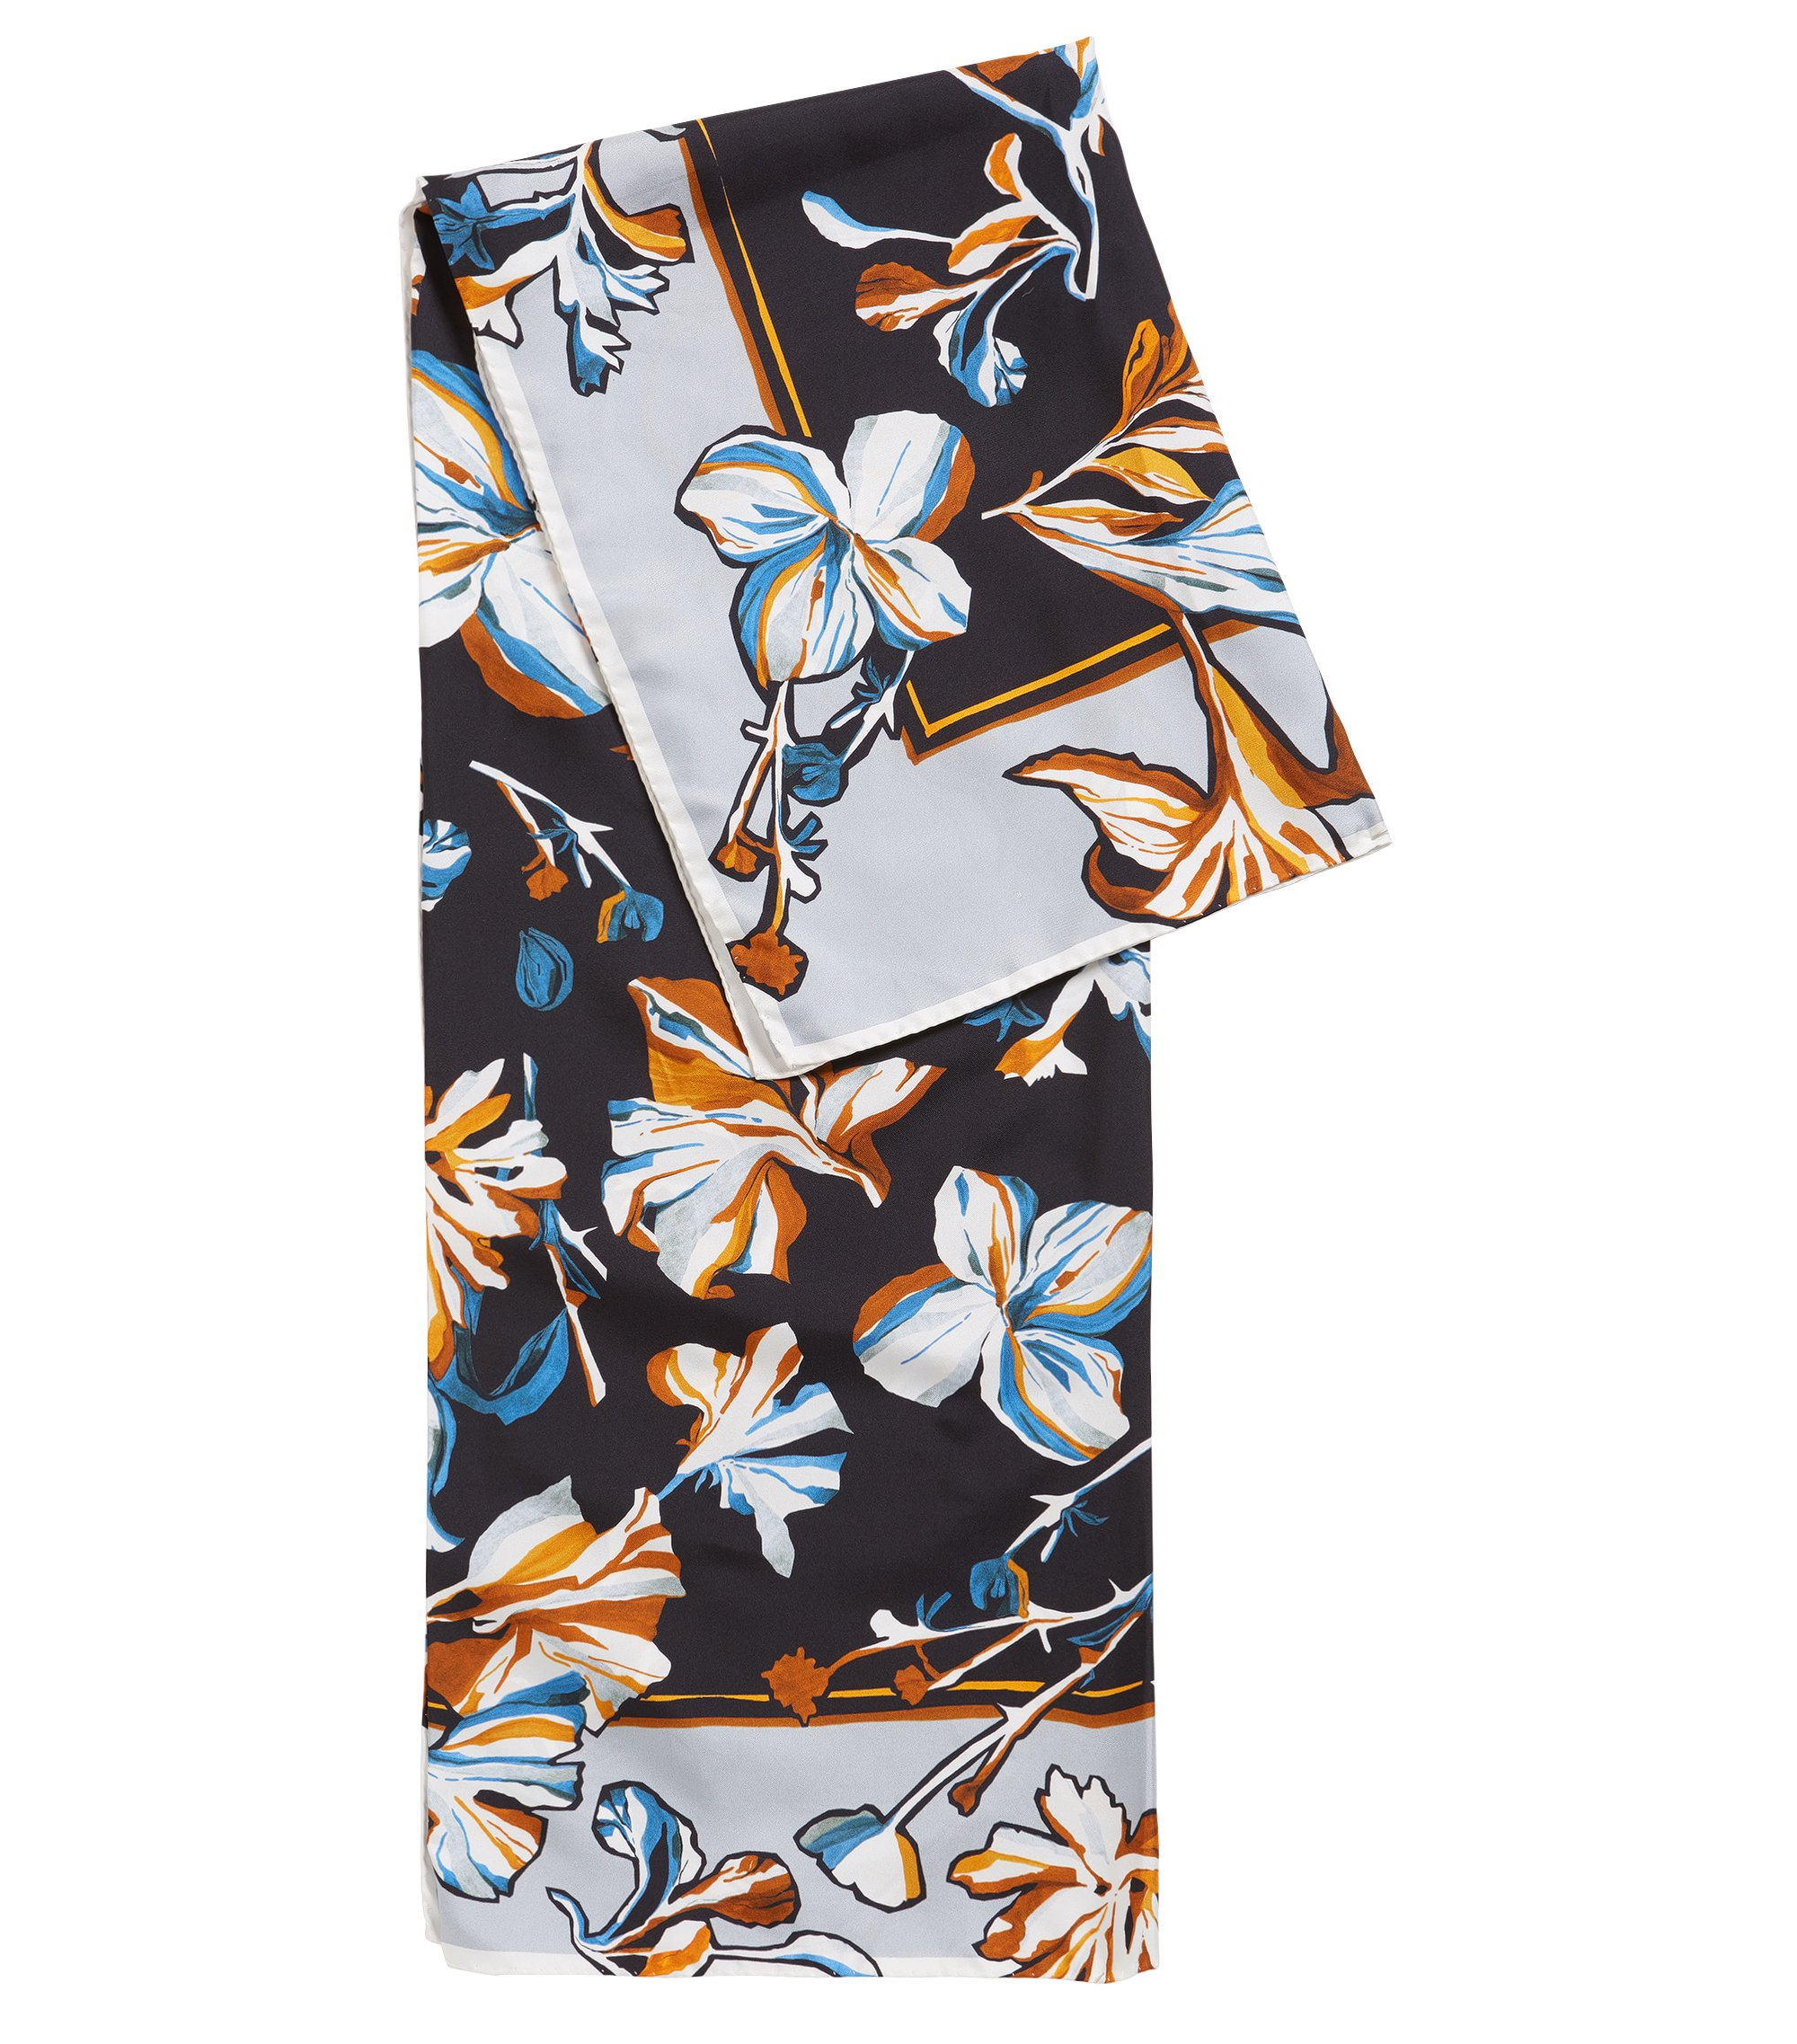 Floral Silk Scarf | Lorie, Patterned